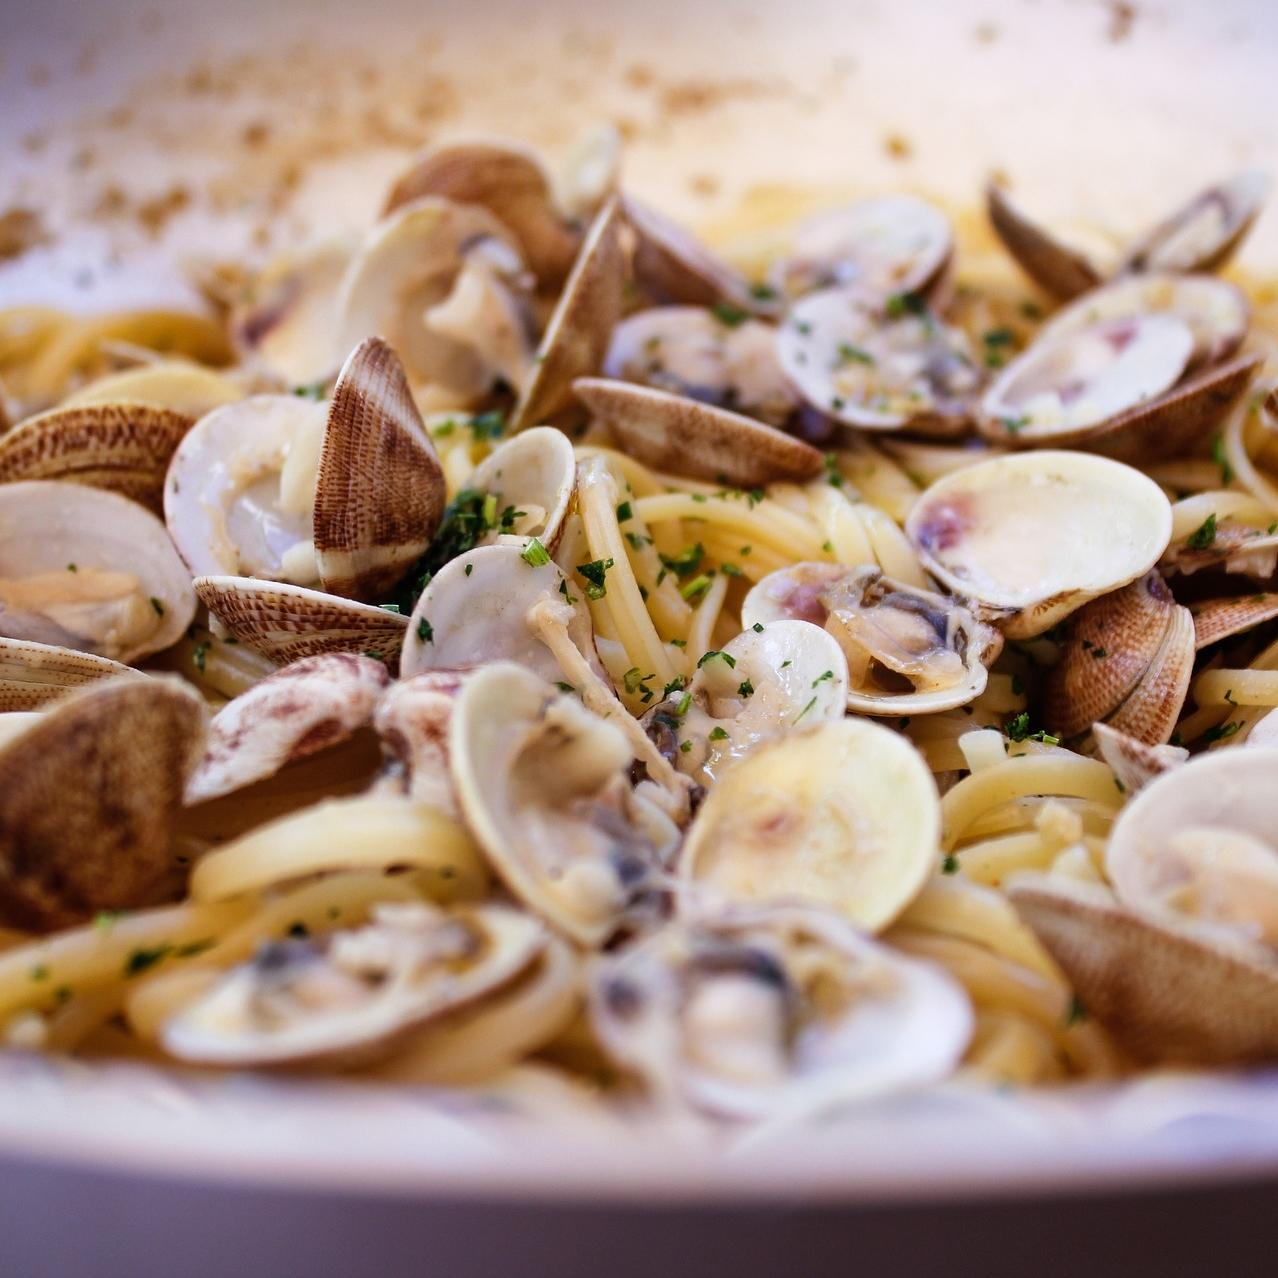 Bowl of cooked clams